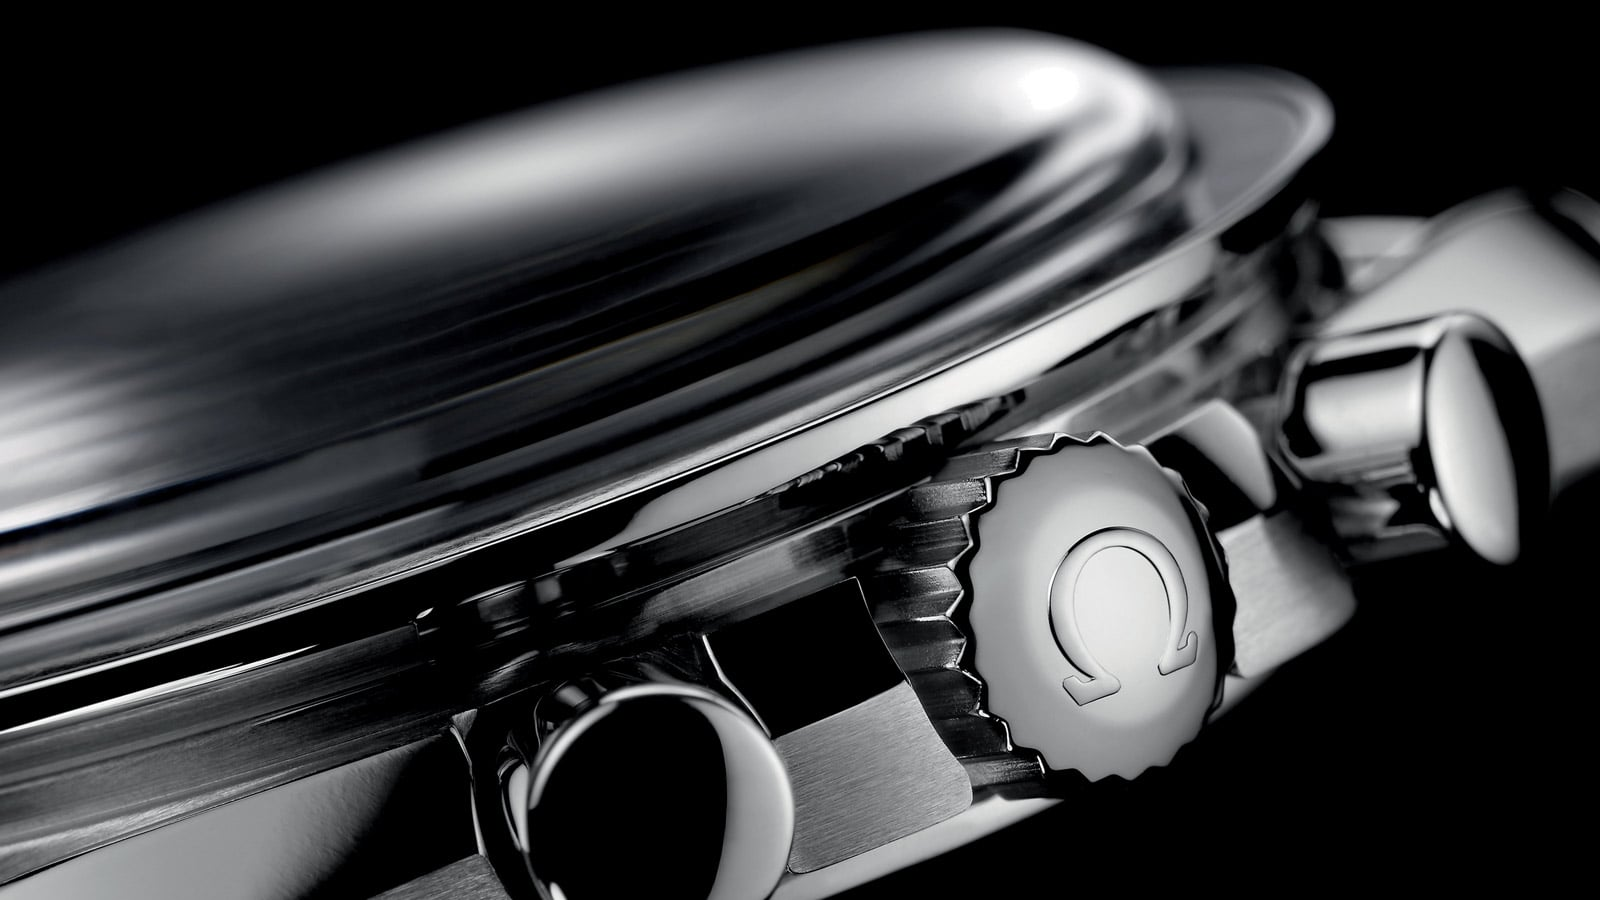 Side view of the Omega SPEEDMASTER PROFESSIONAL MOONWATCH steel crown and pushers